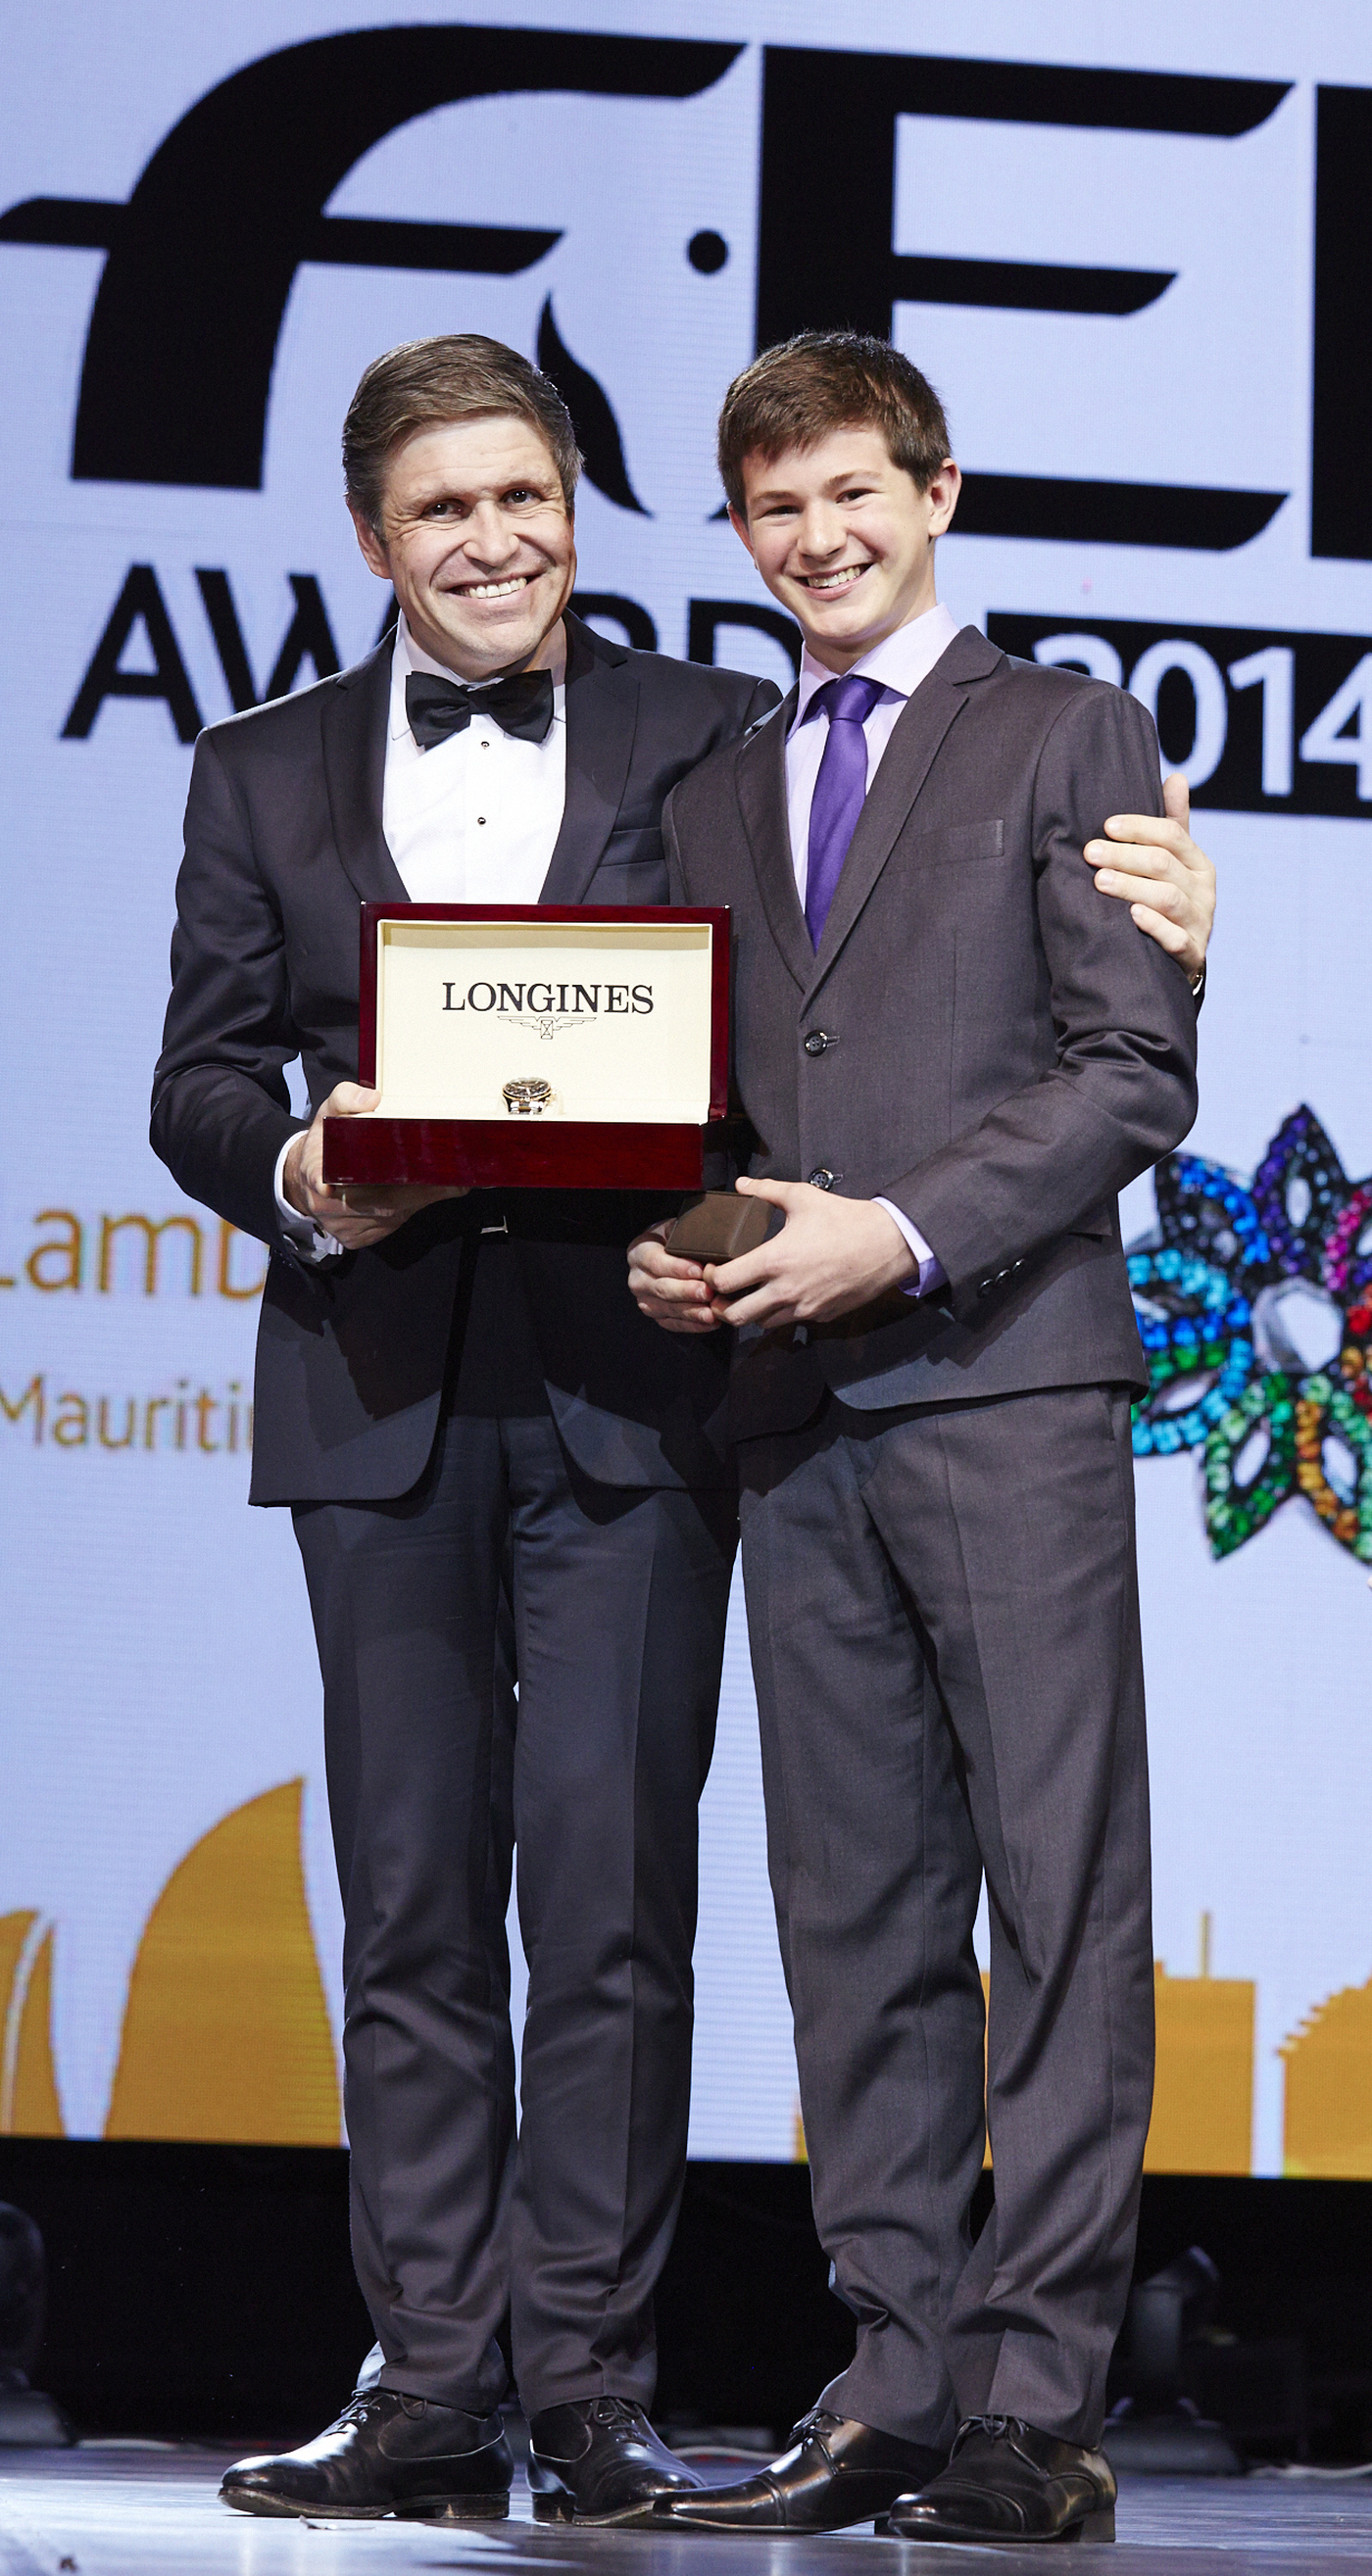 Longines Show Jumping Event: Lambert Leclezio awarded with the Longines Rising Star Award at the FEI Awards 2